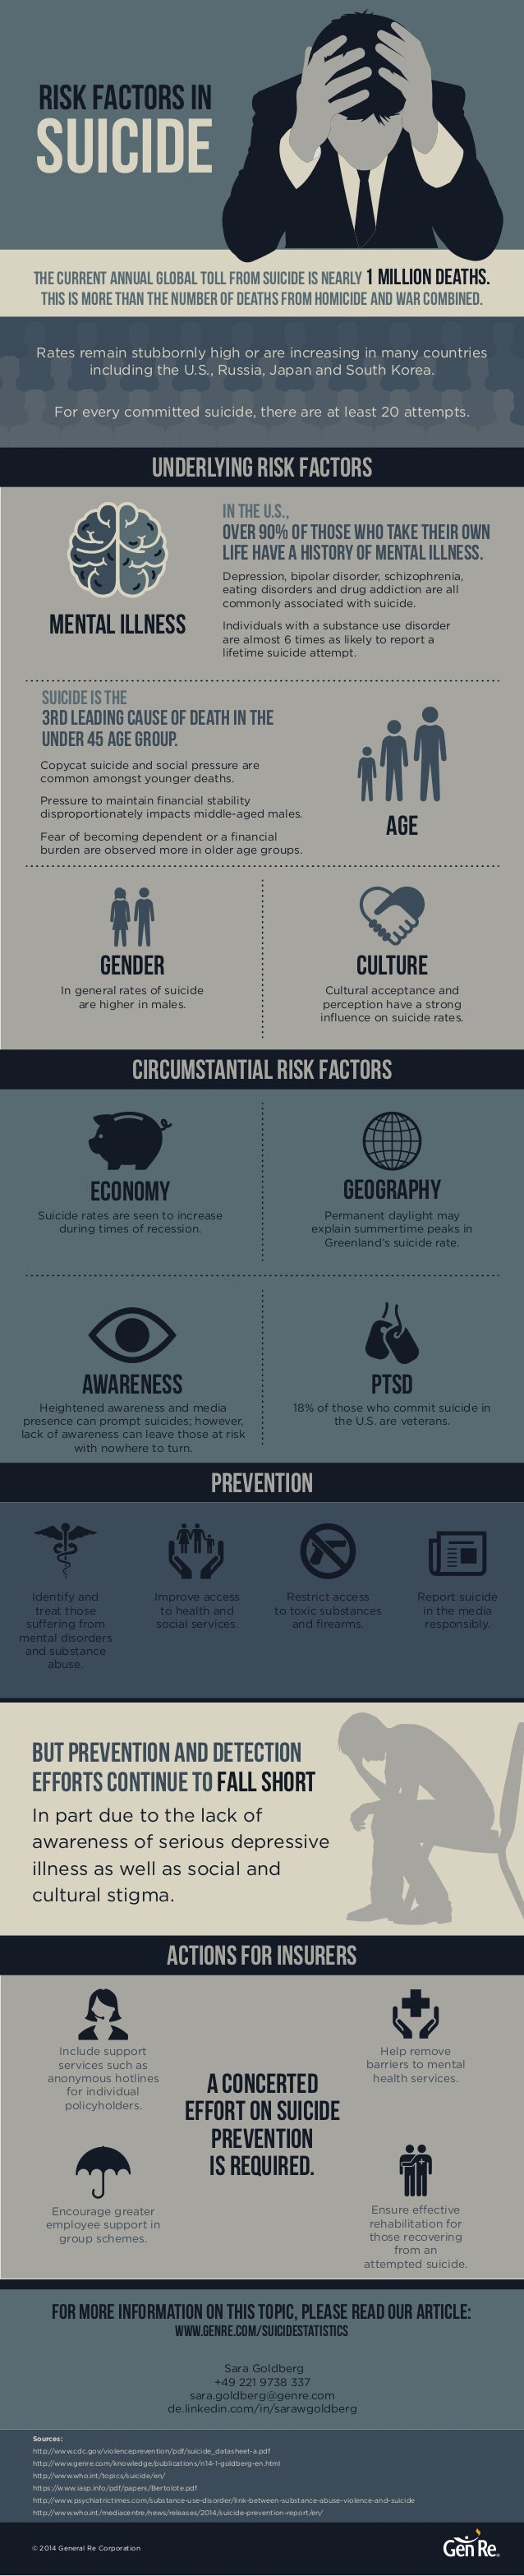 risk factors in  suicide  The current annual global toll from suicide is nearly 1 million deaths.  This is more than the n...